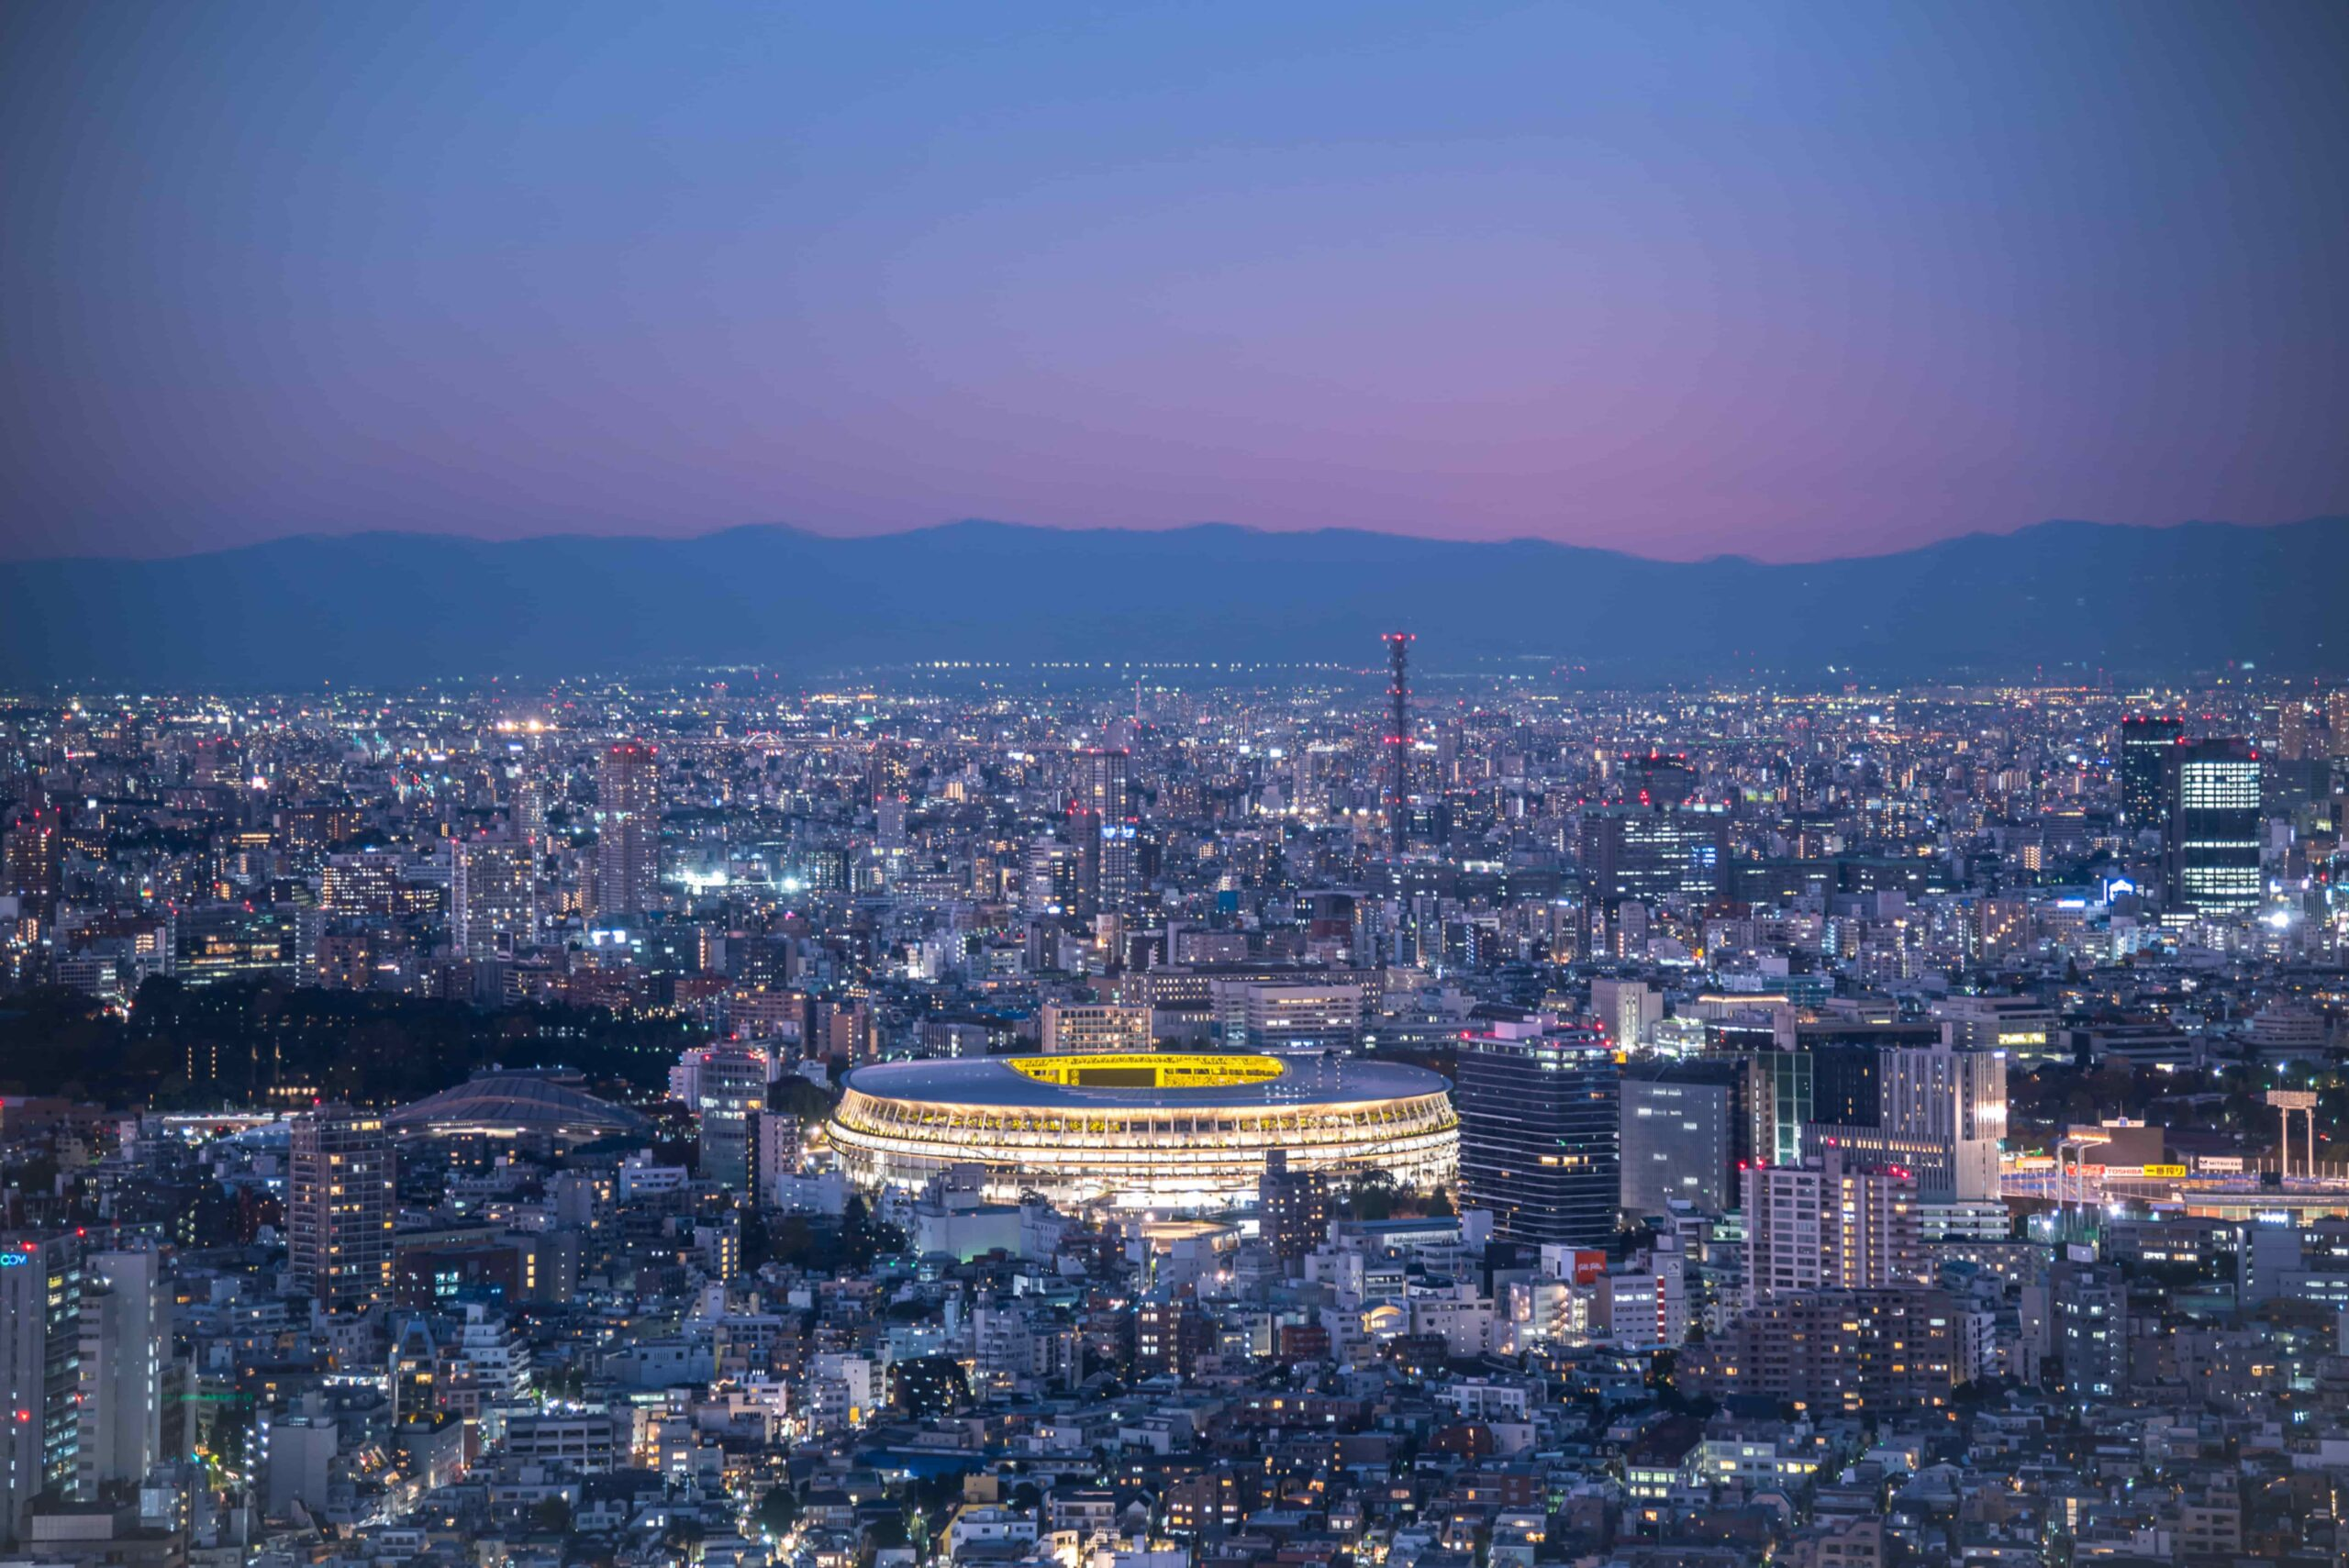 How to Watch The 2020 Tokyo Olympics in Japan in 2021